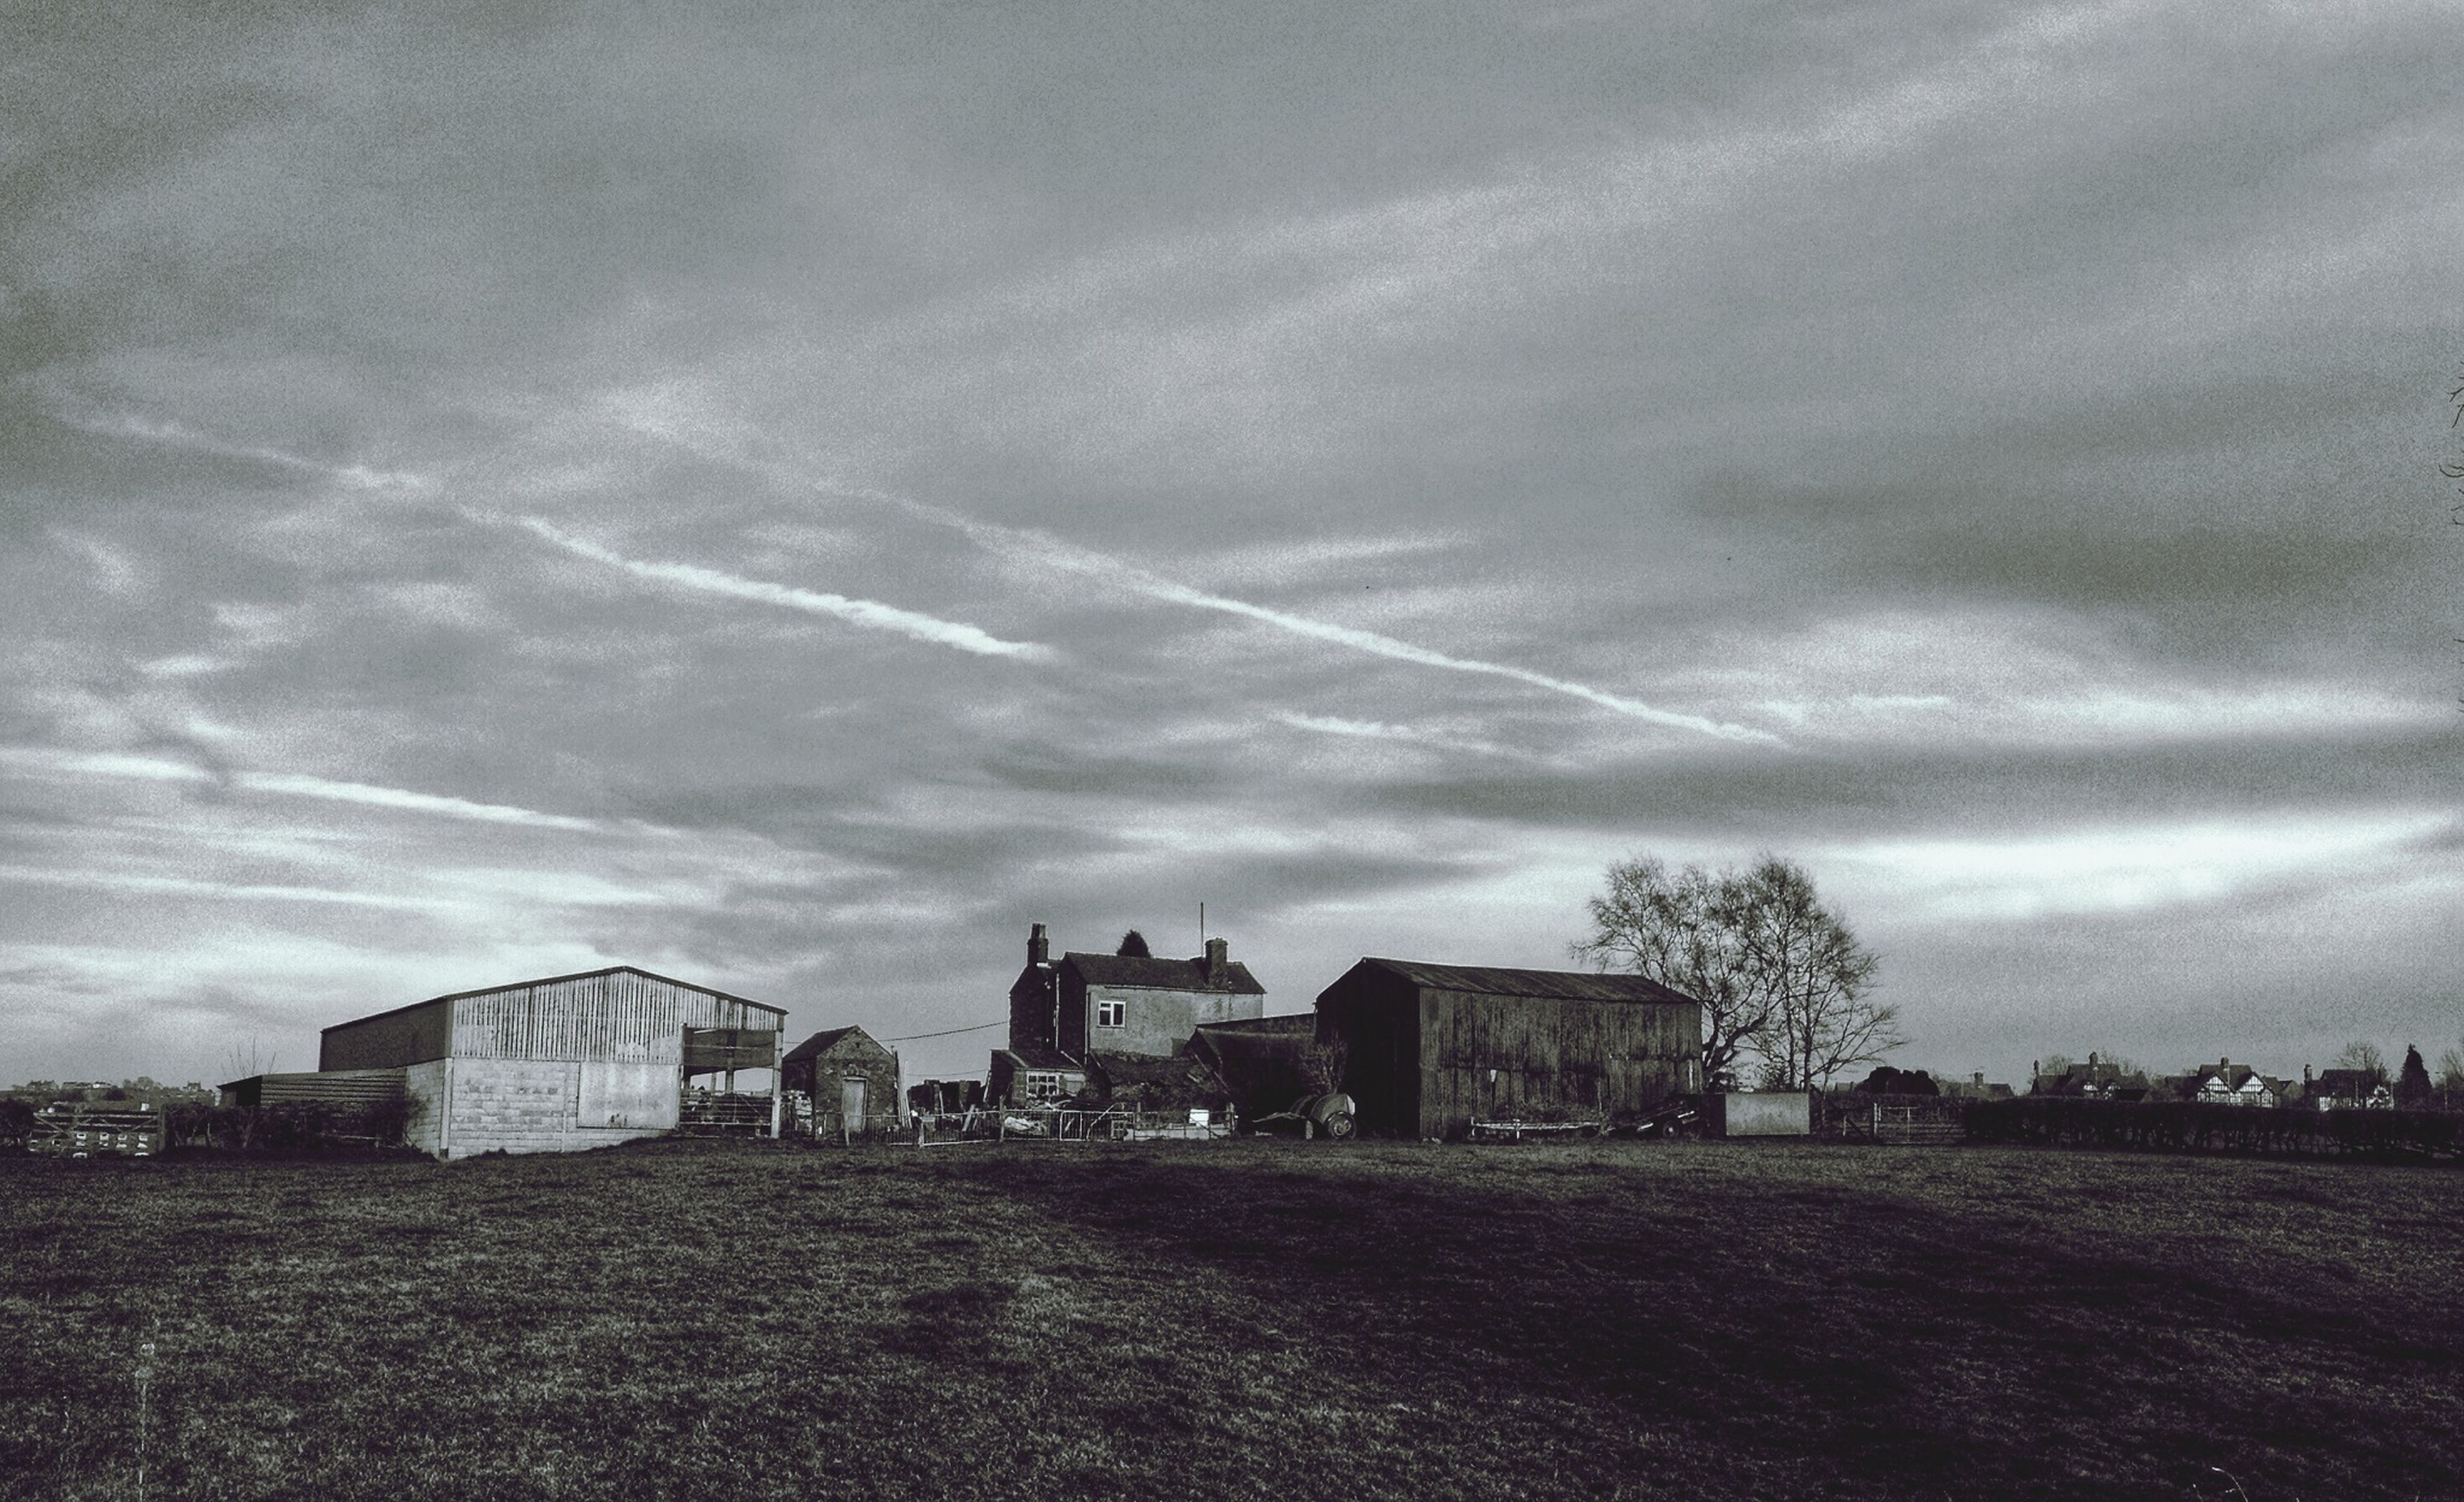 building exterior, architecture, built structure, sky, field, house, grass, cloud - sky, rural scene, landscape, tree, residential structure, cloud, agriculture, farm, nature, cloudy, village, day, barn